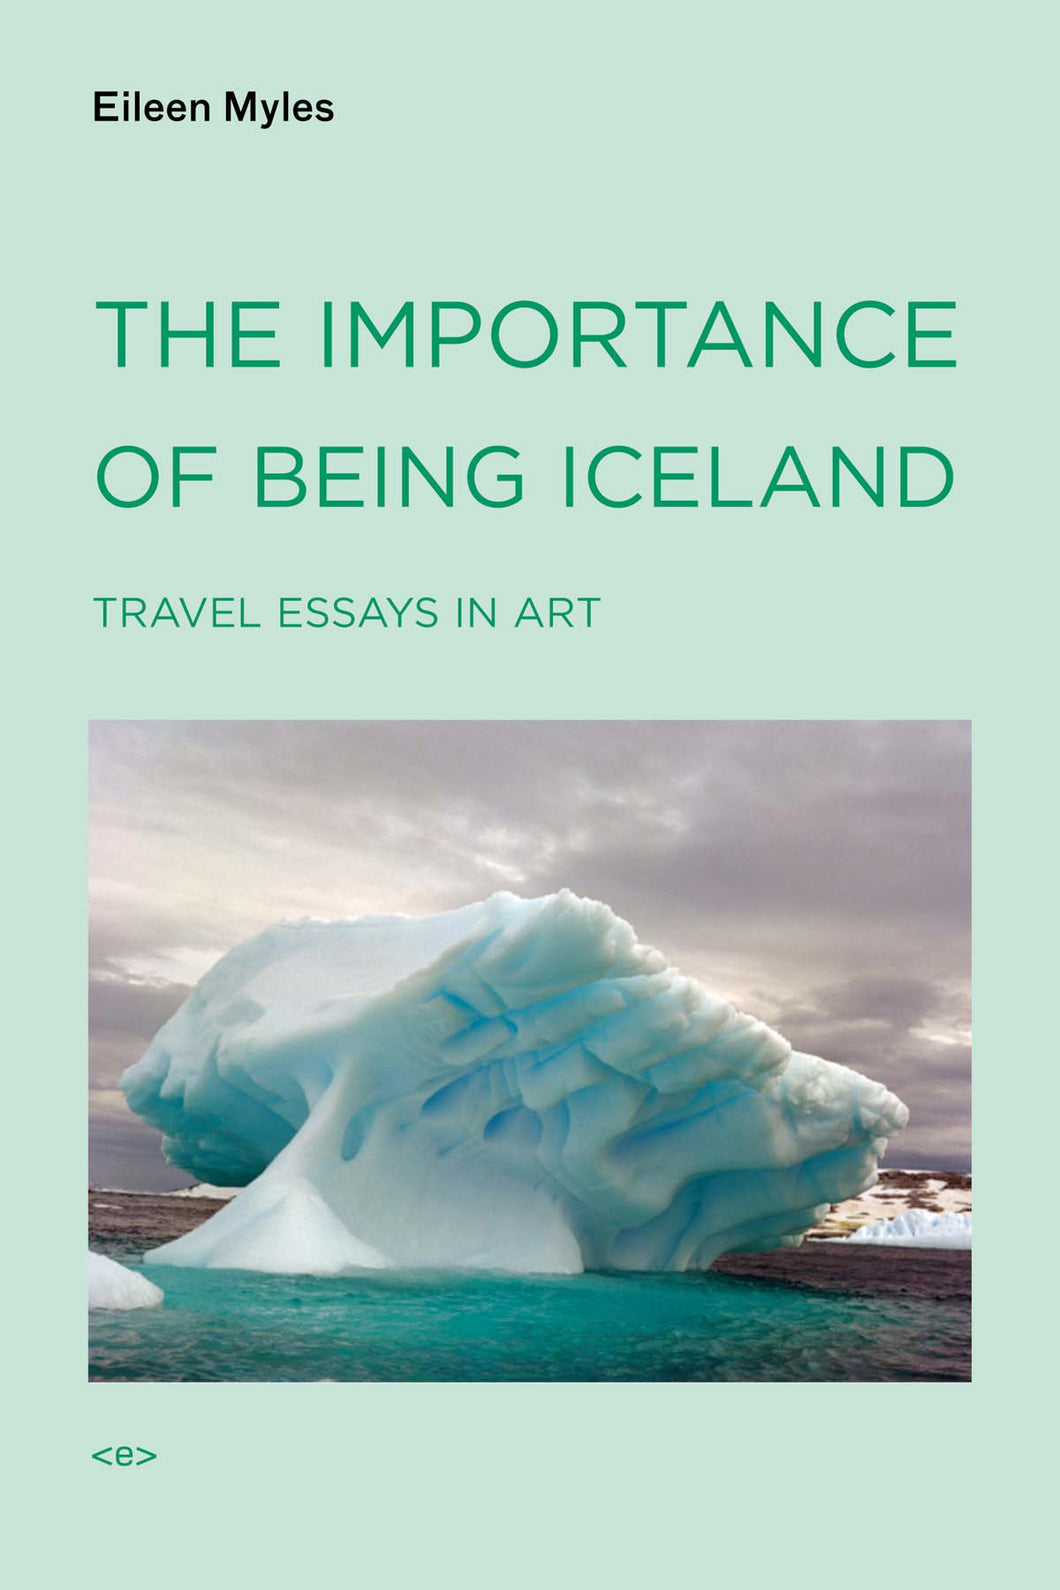 The Importance of Being Iceland: Travel Essays in Art by Eileen Myles